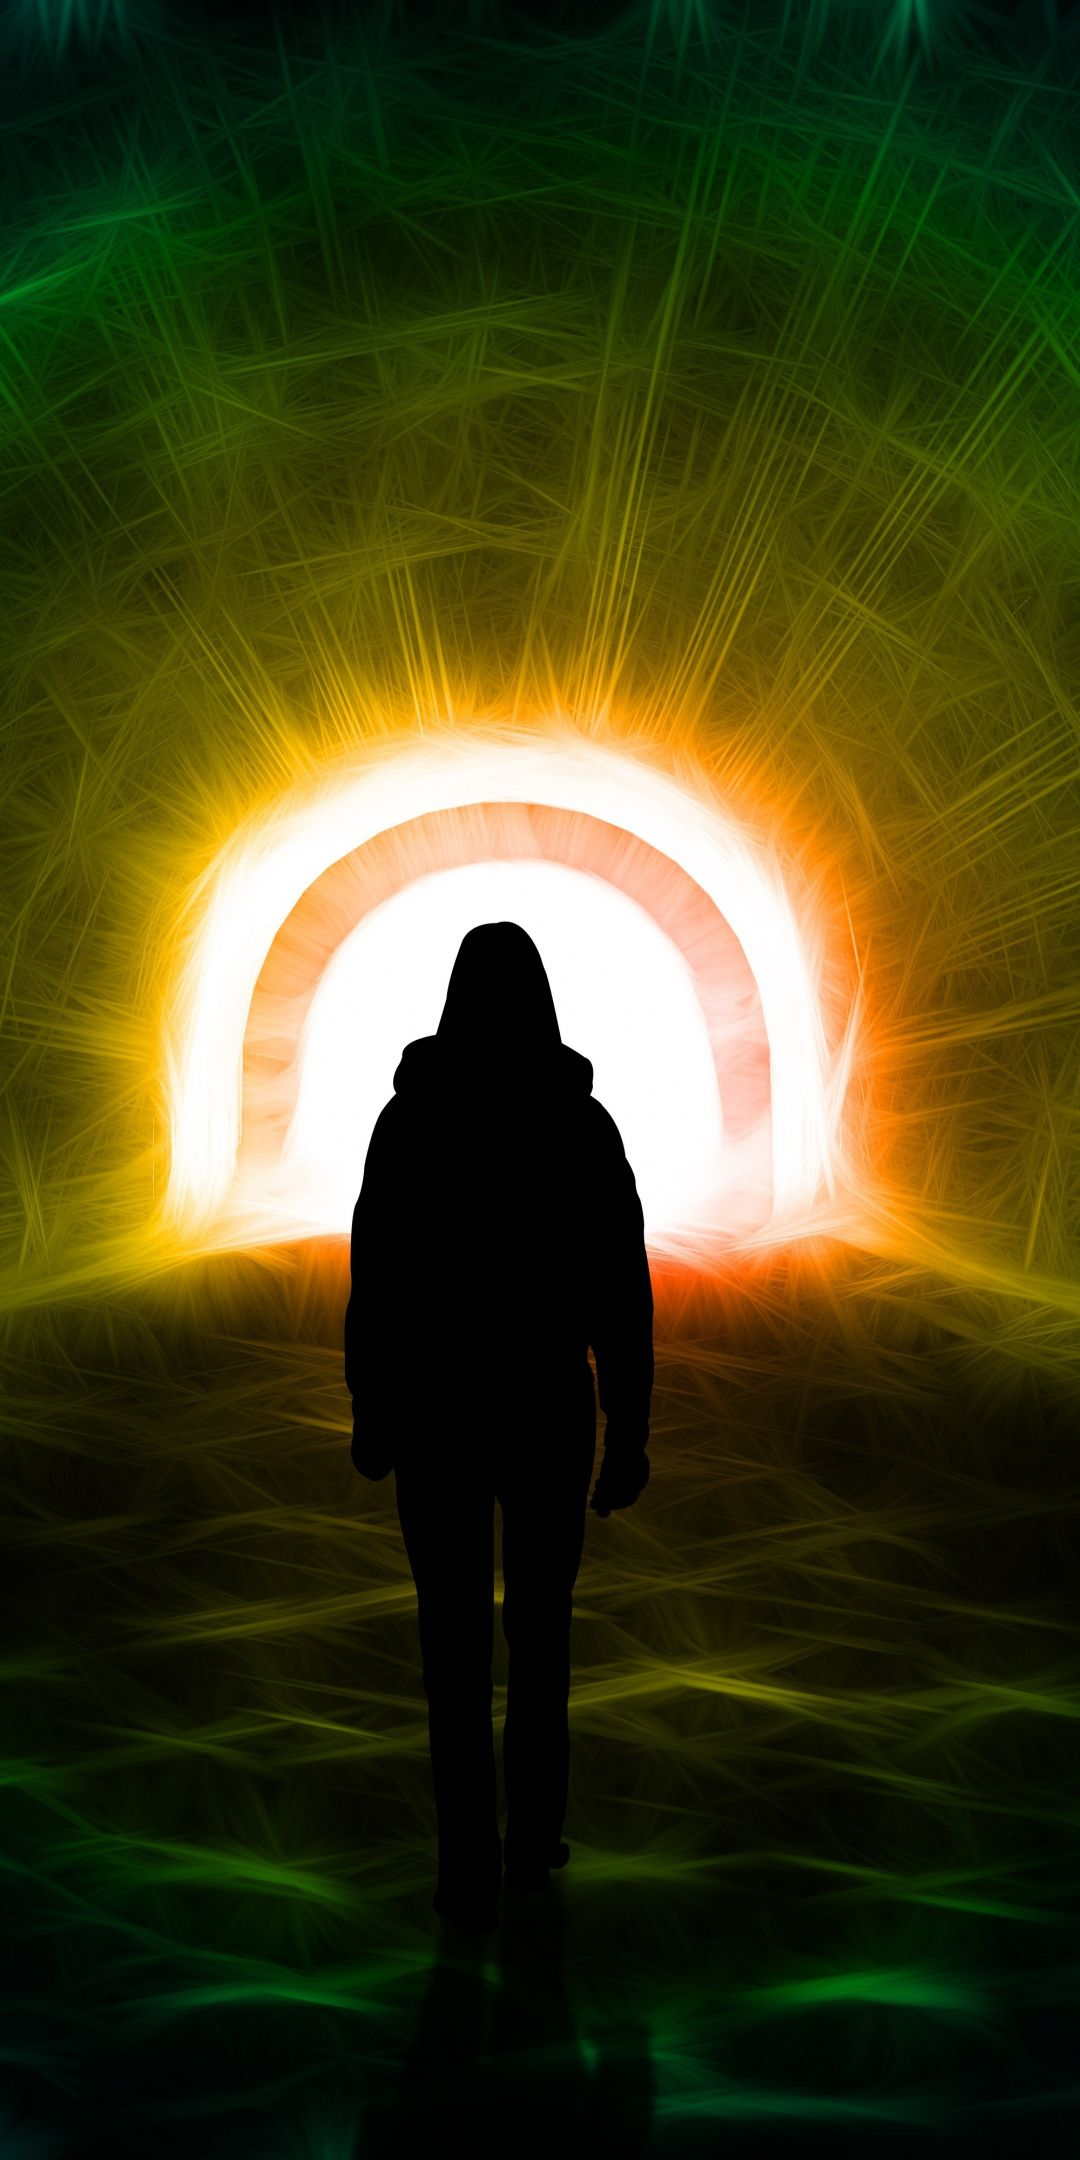 Light Tunnel Man In Hoodie Silhouette 1080x2160 Wallpaper Silhouette Wallpaper Light Tunnel